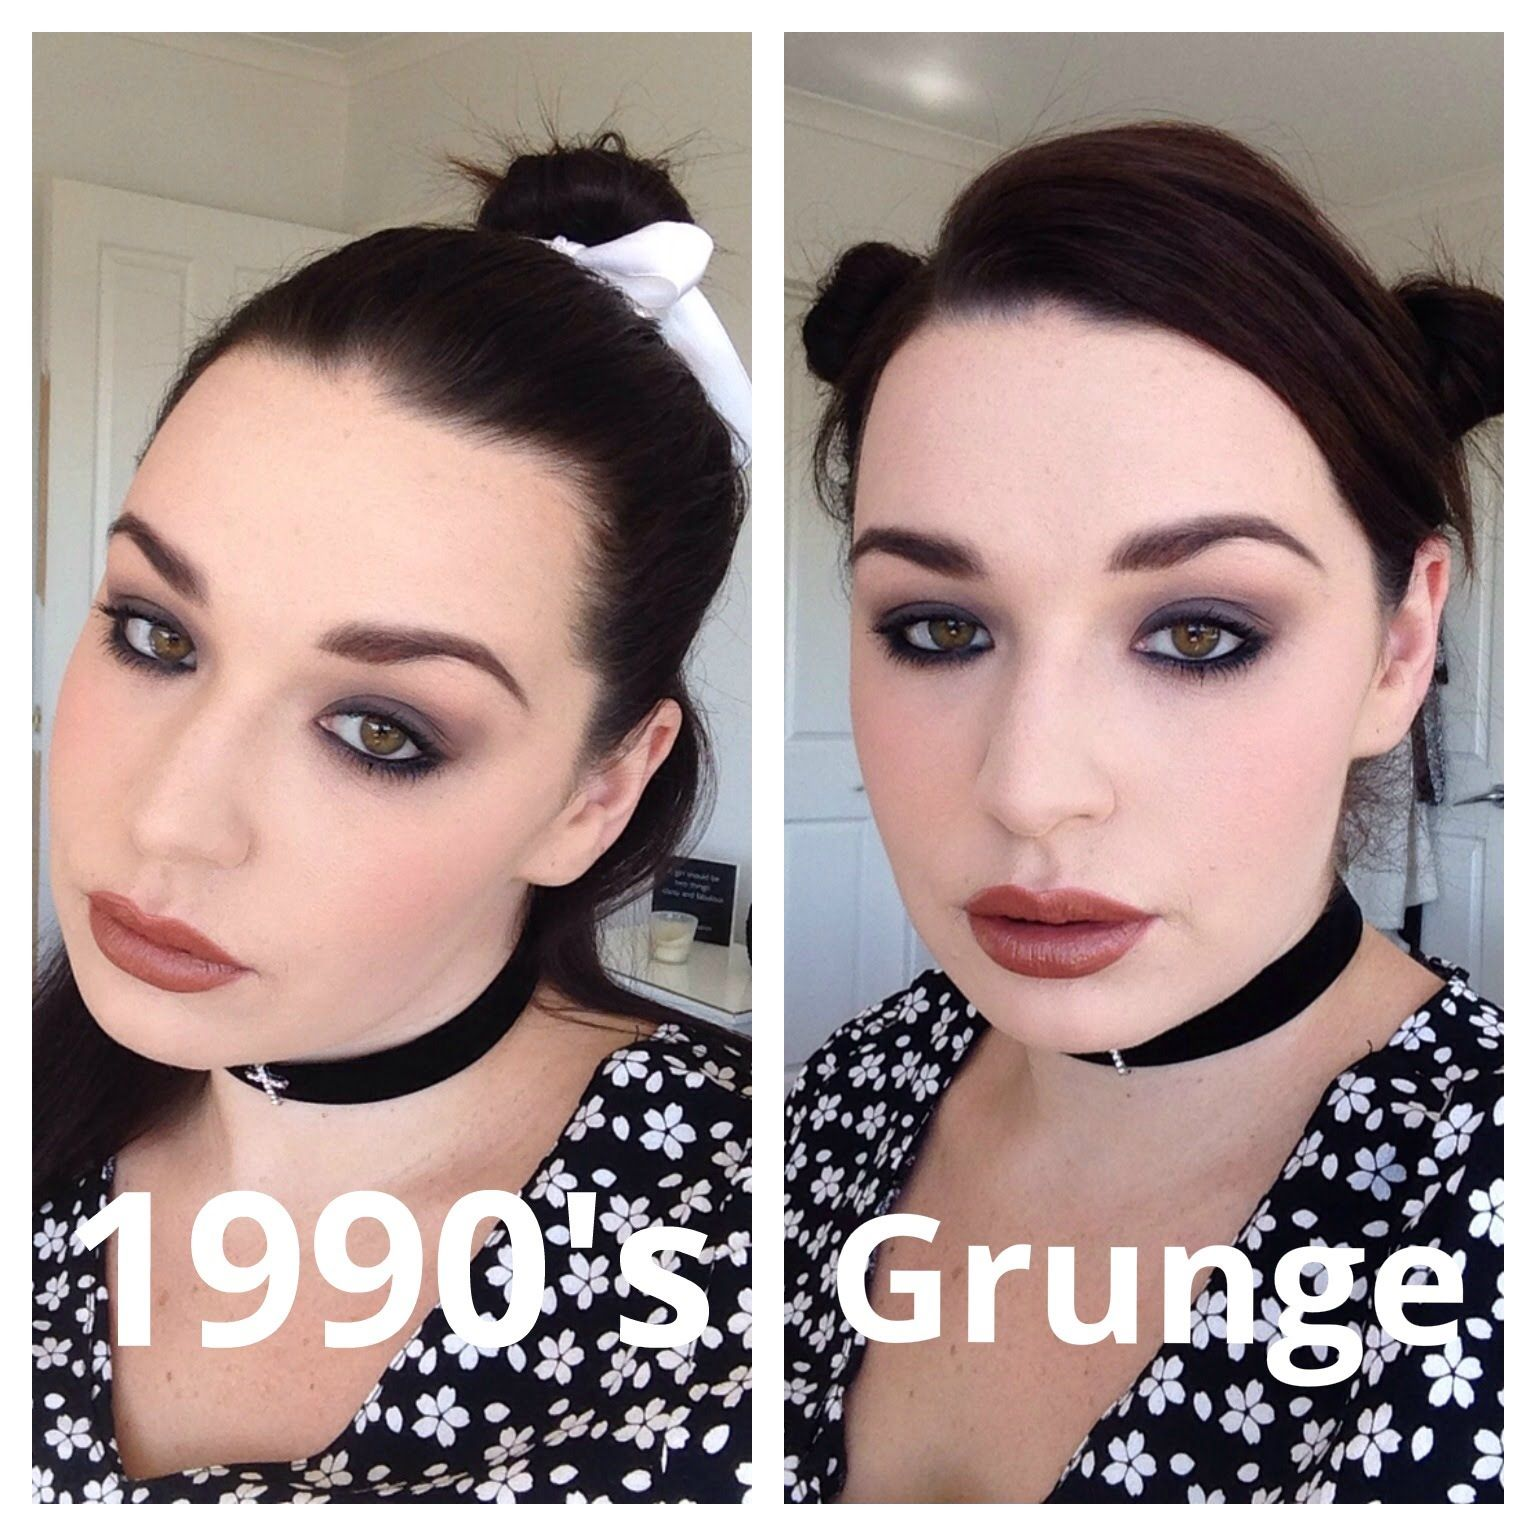 Grunge Glam 1990s Makeup Tutorial - YouTube | 1990's ...